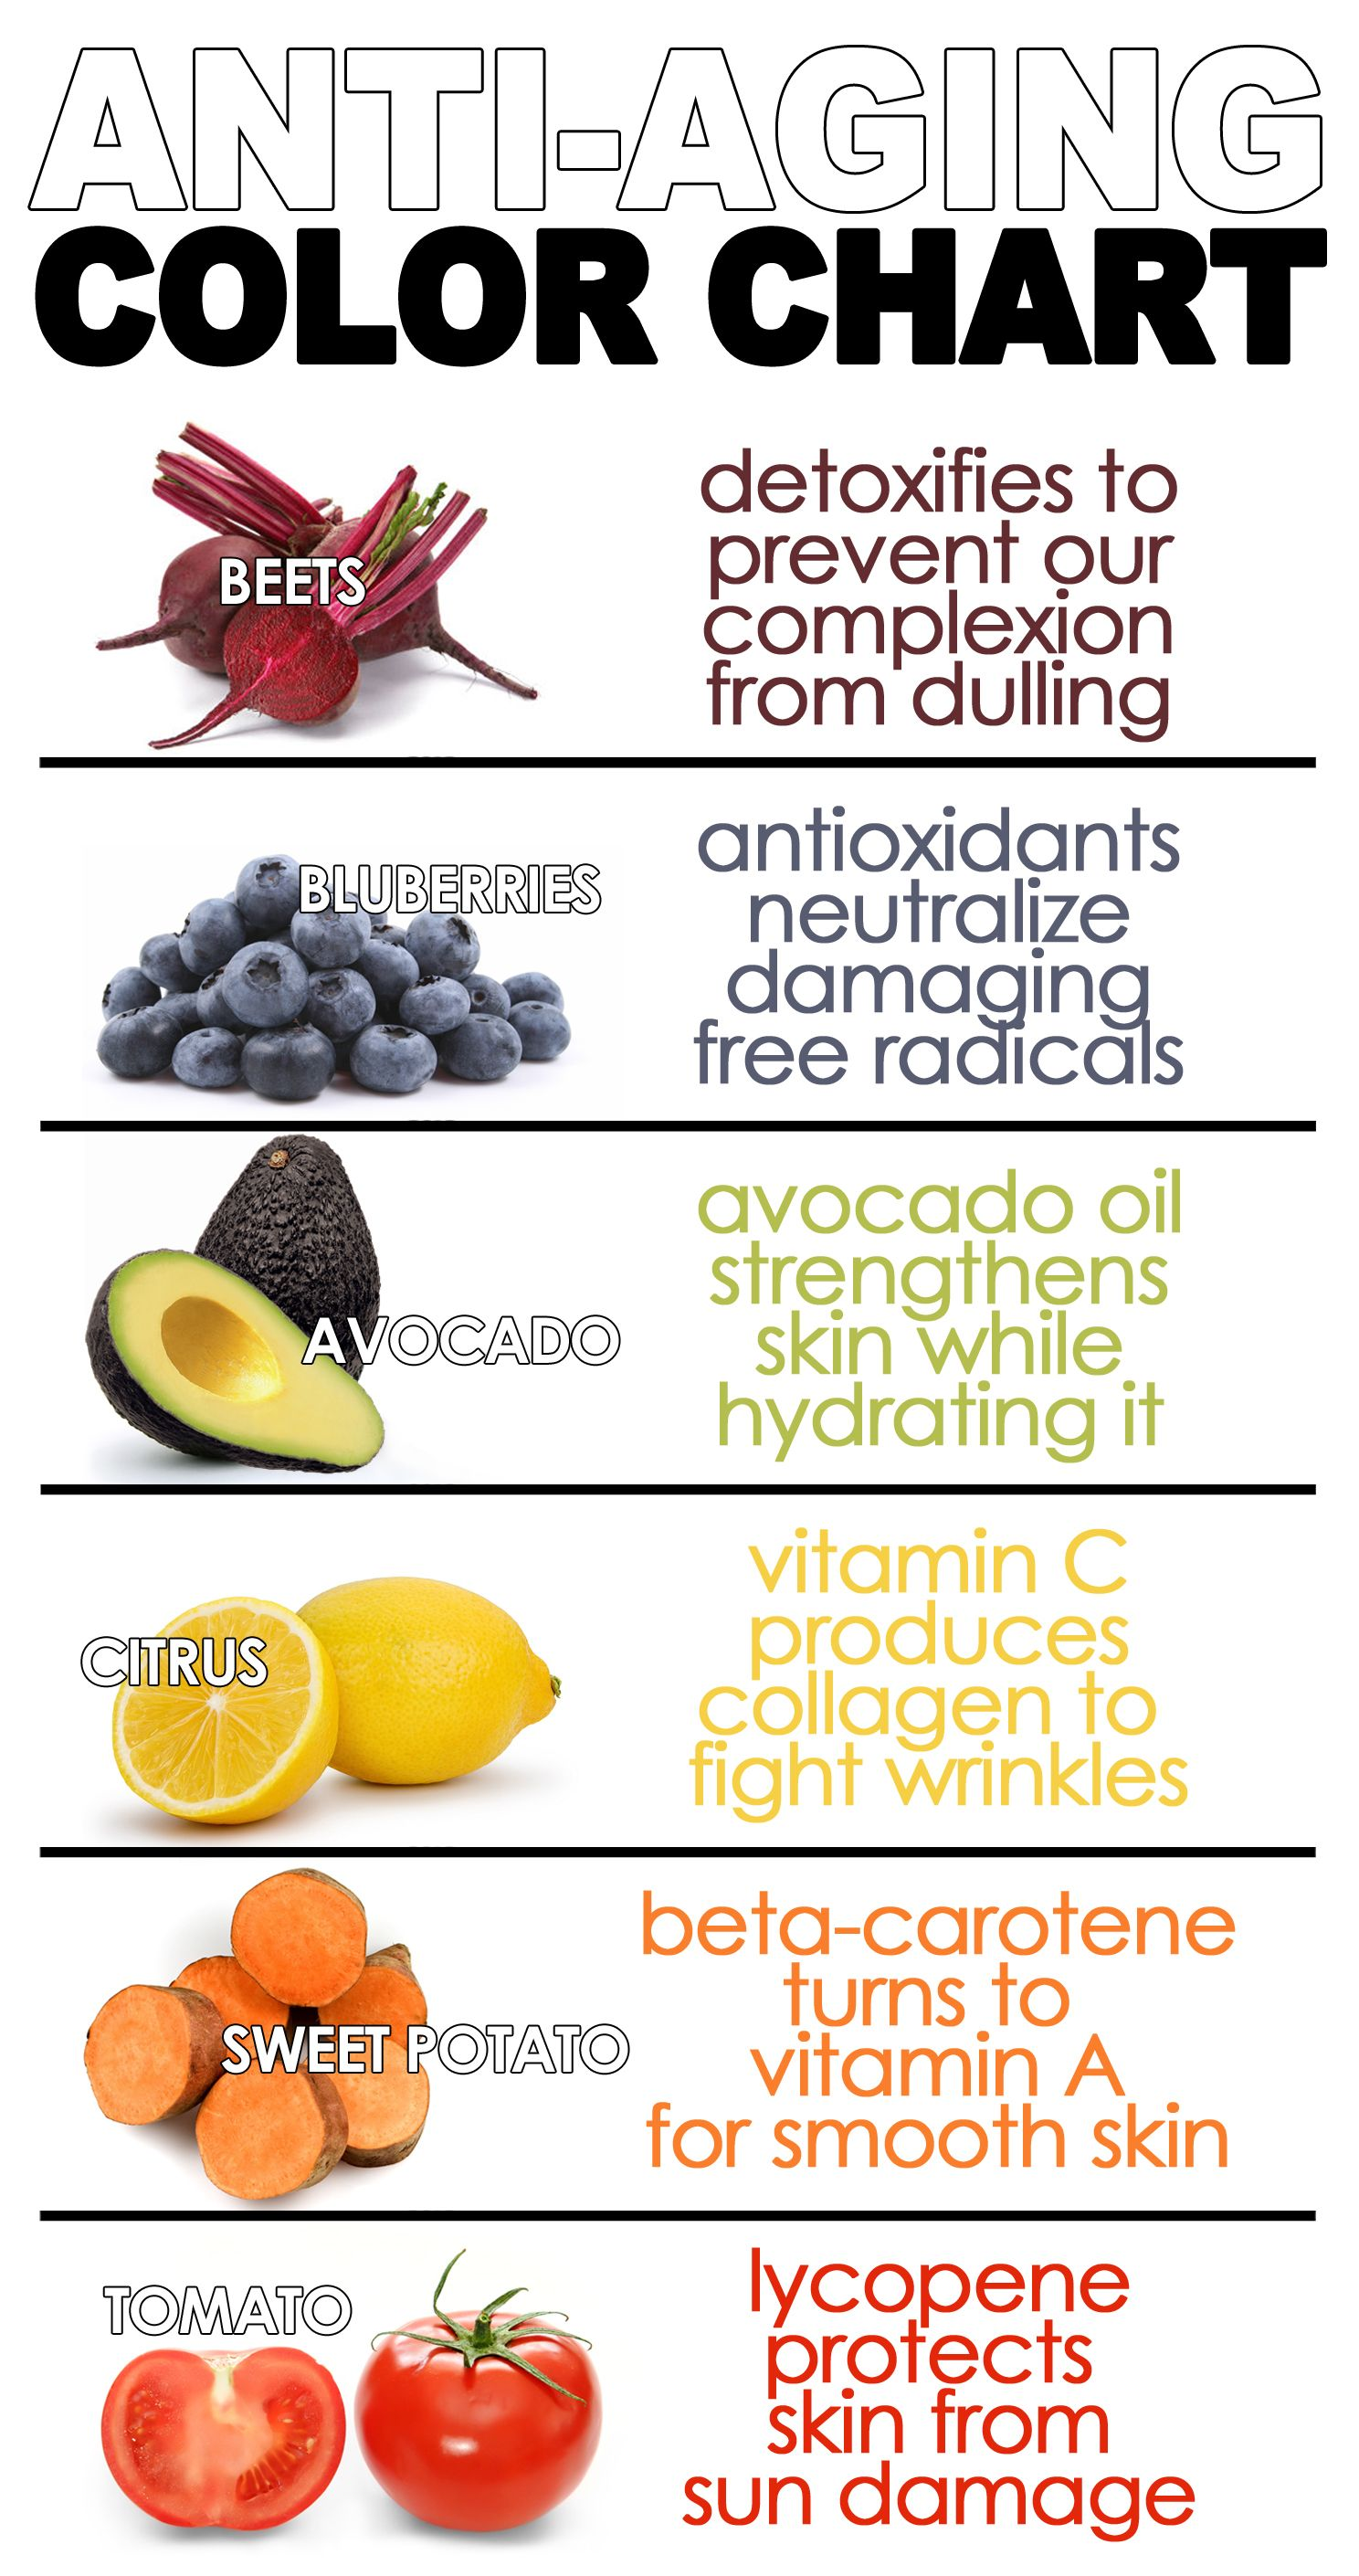 Anti Aging Color Chart Tomatoes Lemons Avocados Blueberries What They Mean For Stayforeveryoung Anti Aging Food Health And Nutrition Potato Vitamins